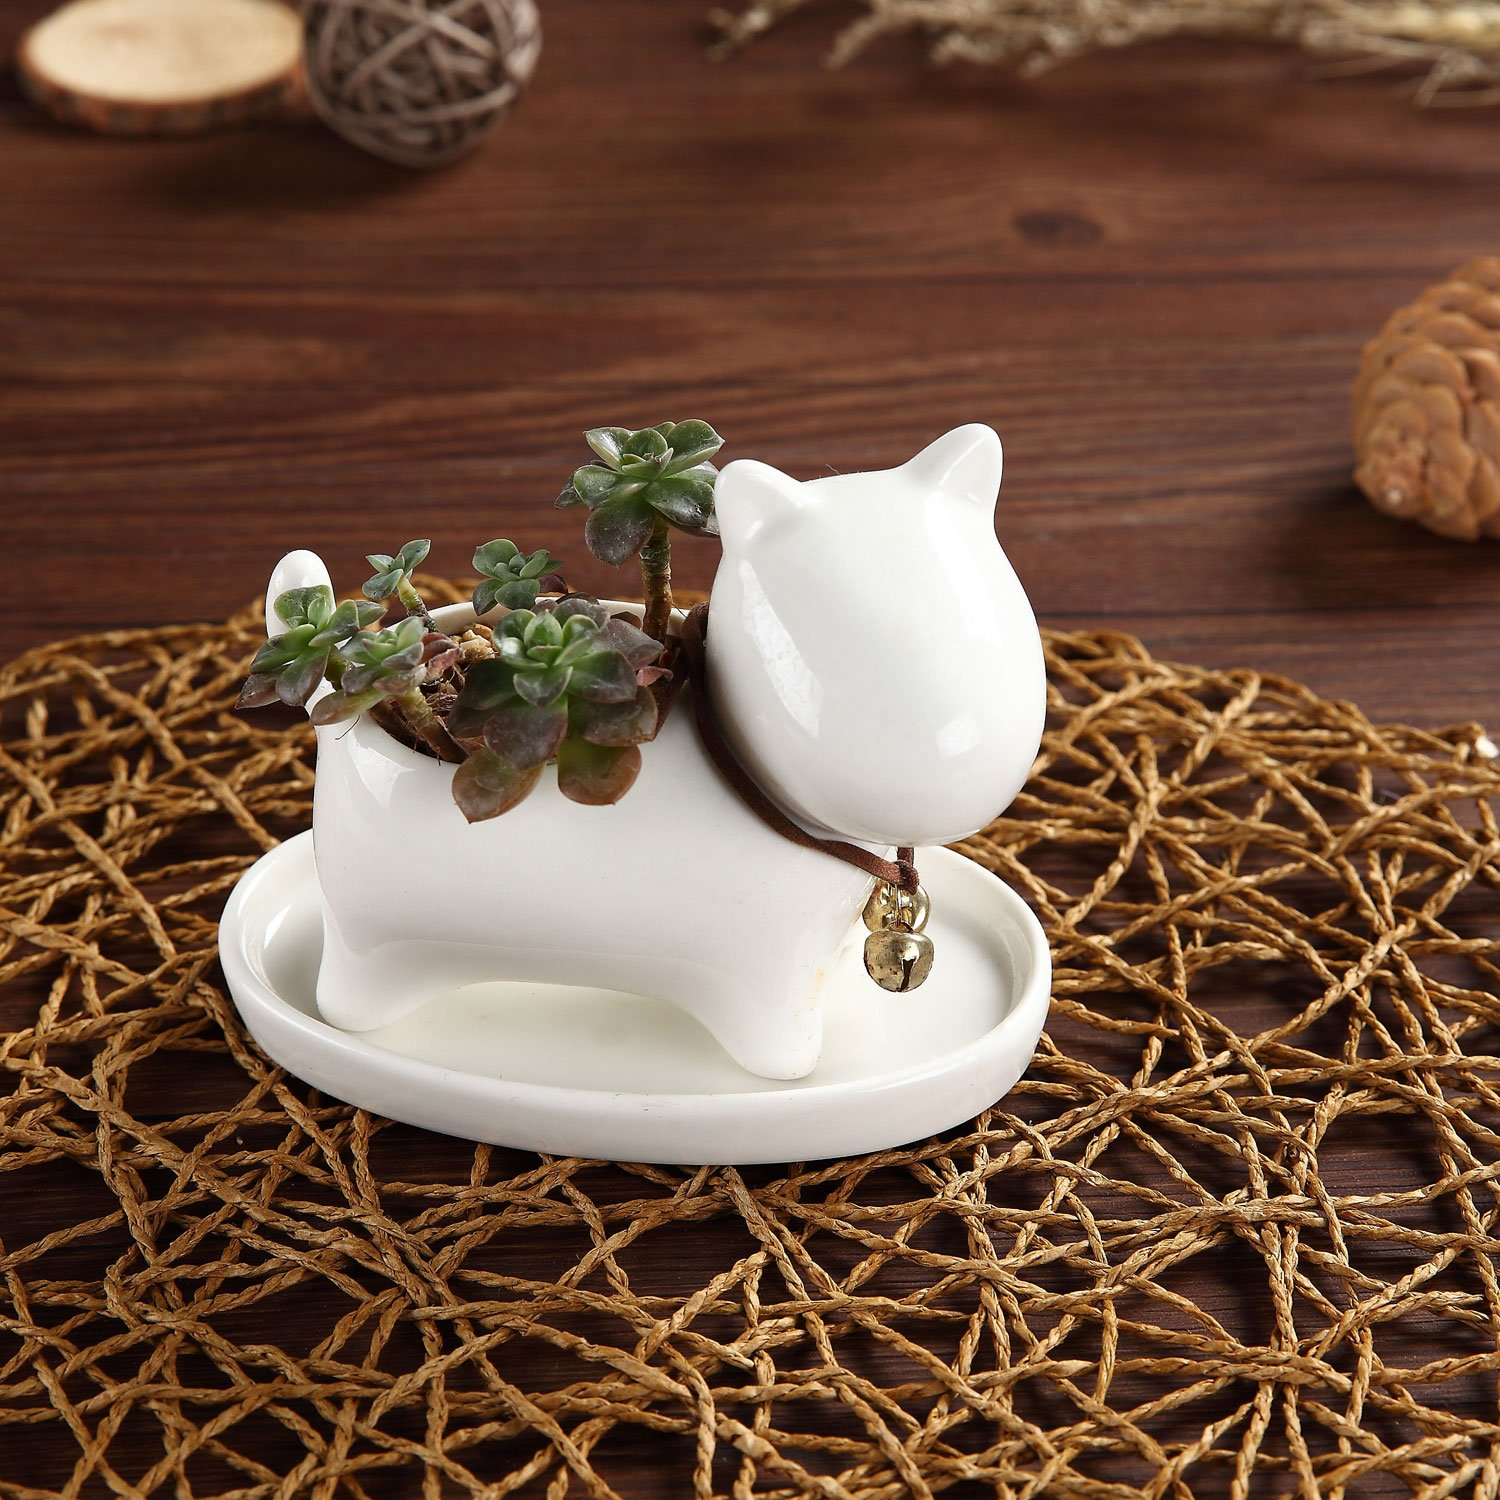 T4U Lovely Puppy Dog Design Ceramic Succulent Plant Pot Cactus Flower Pots Container Porcelain Holder Planter Decoration with Golden Bell and Tray – Pack of 1